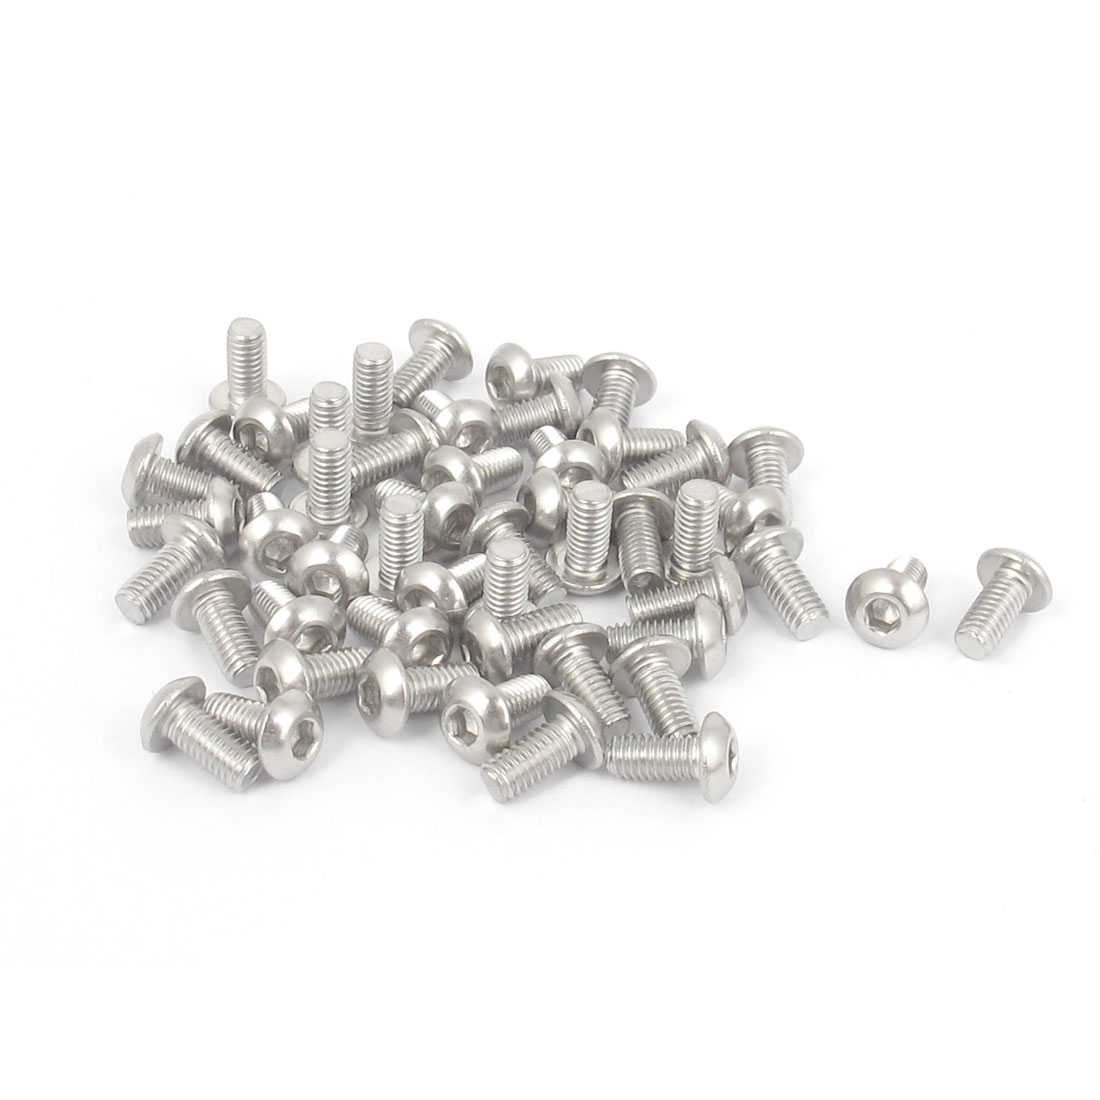 M3 x 6mm 304 Stainless Steel Hex Socket Machine Countersunk Round Head Screw Bolts 50PCS